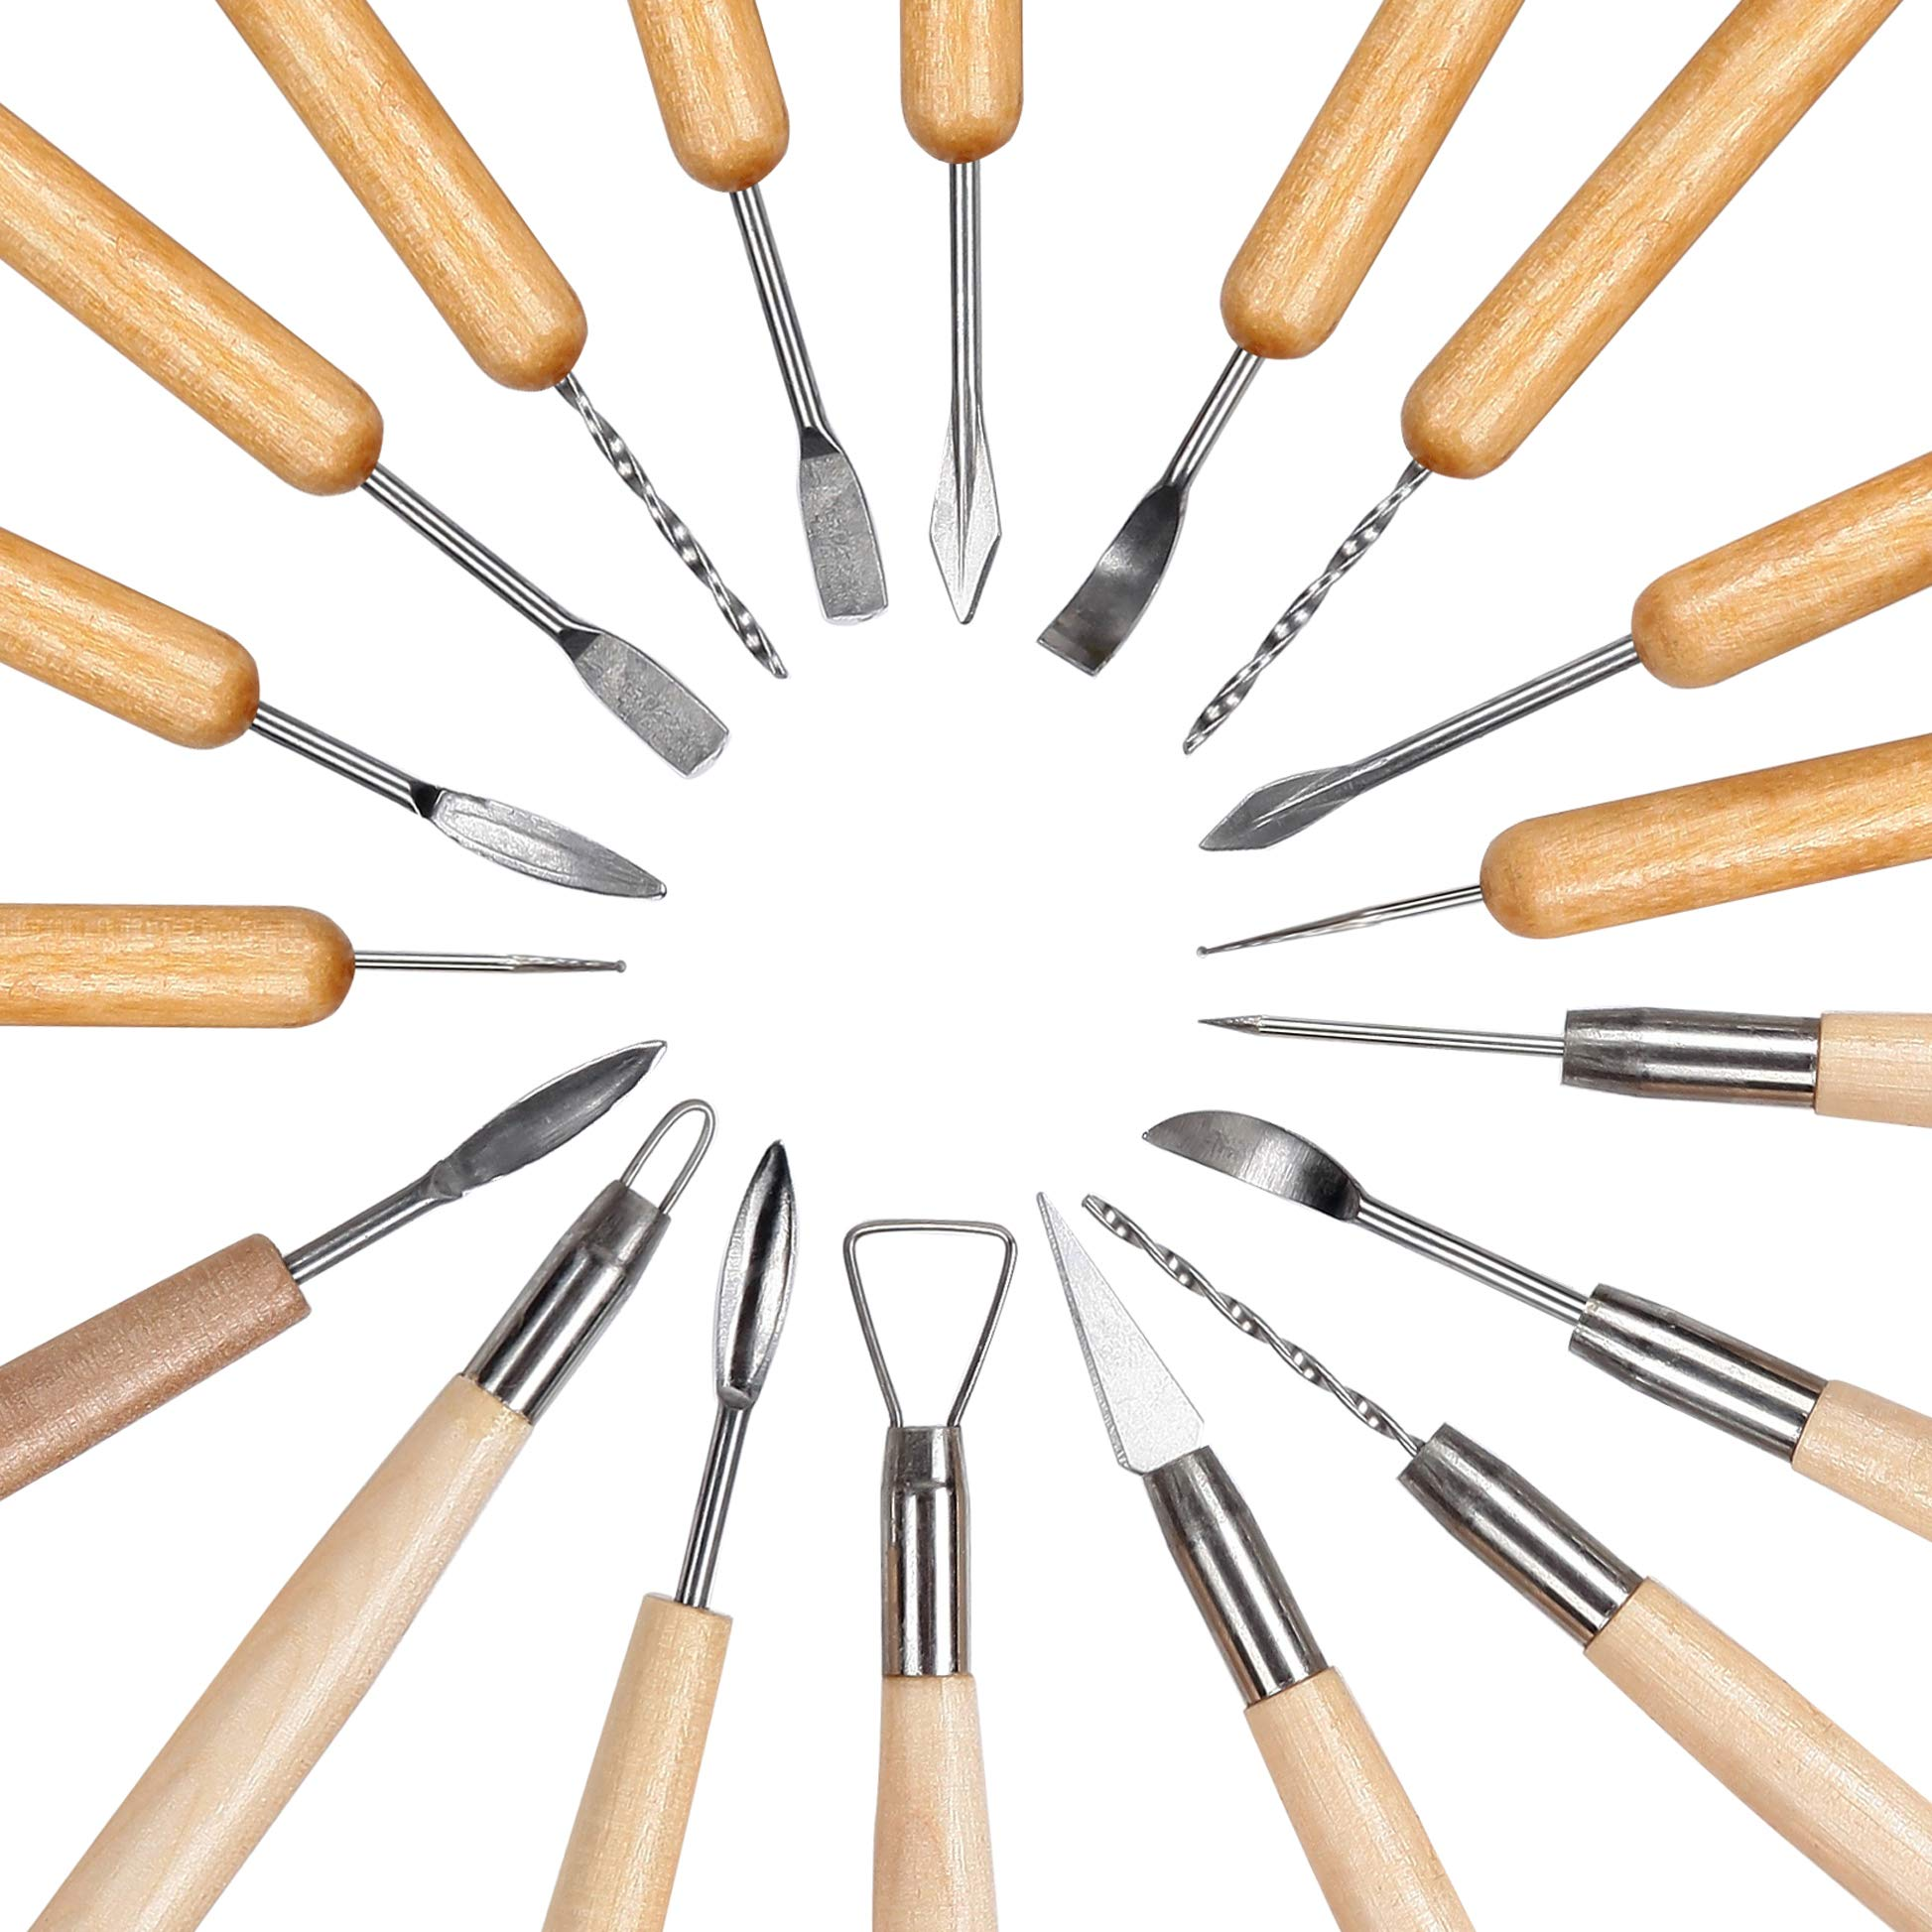 Falling in Art 45pcs Clay Sculpting Tool Kit, Pottery Ceramic Tool Set with Plastic Box by Falling in Art (Image #2)